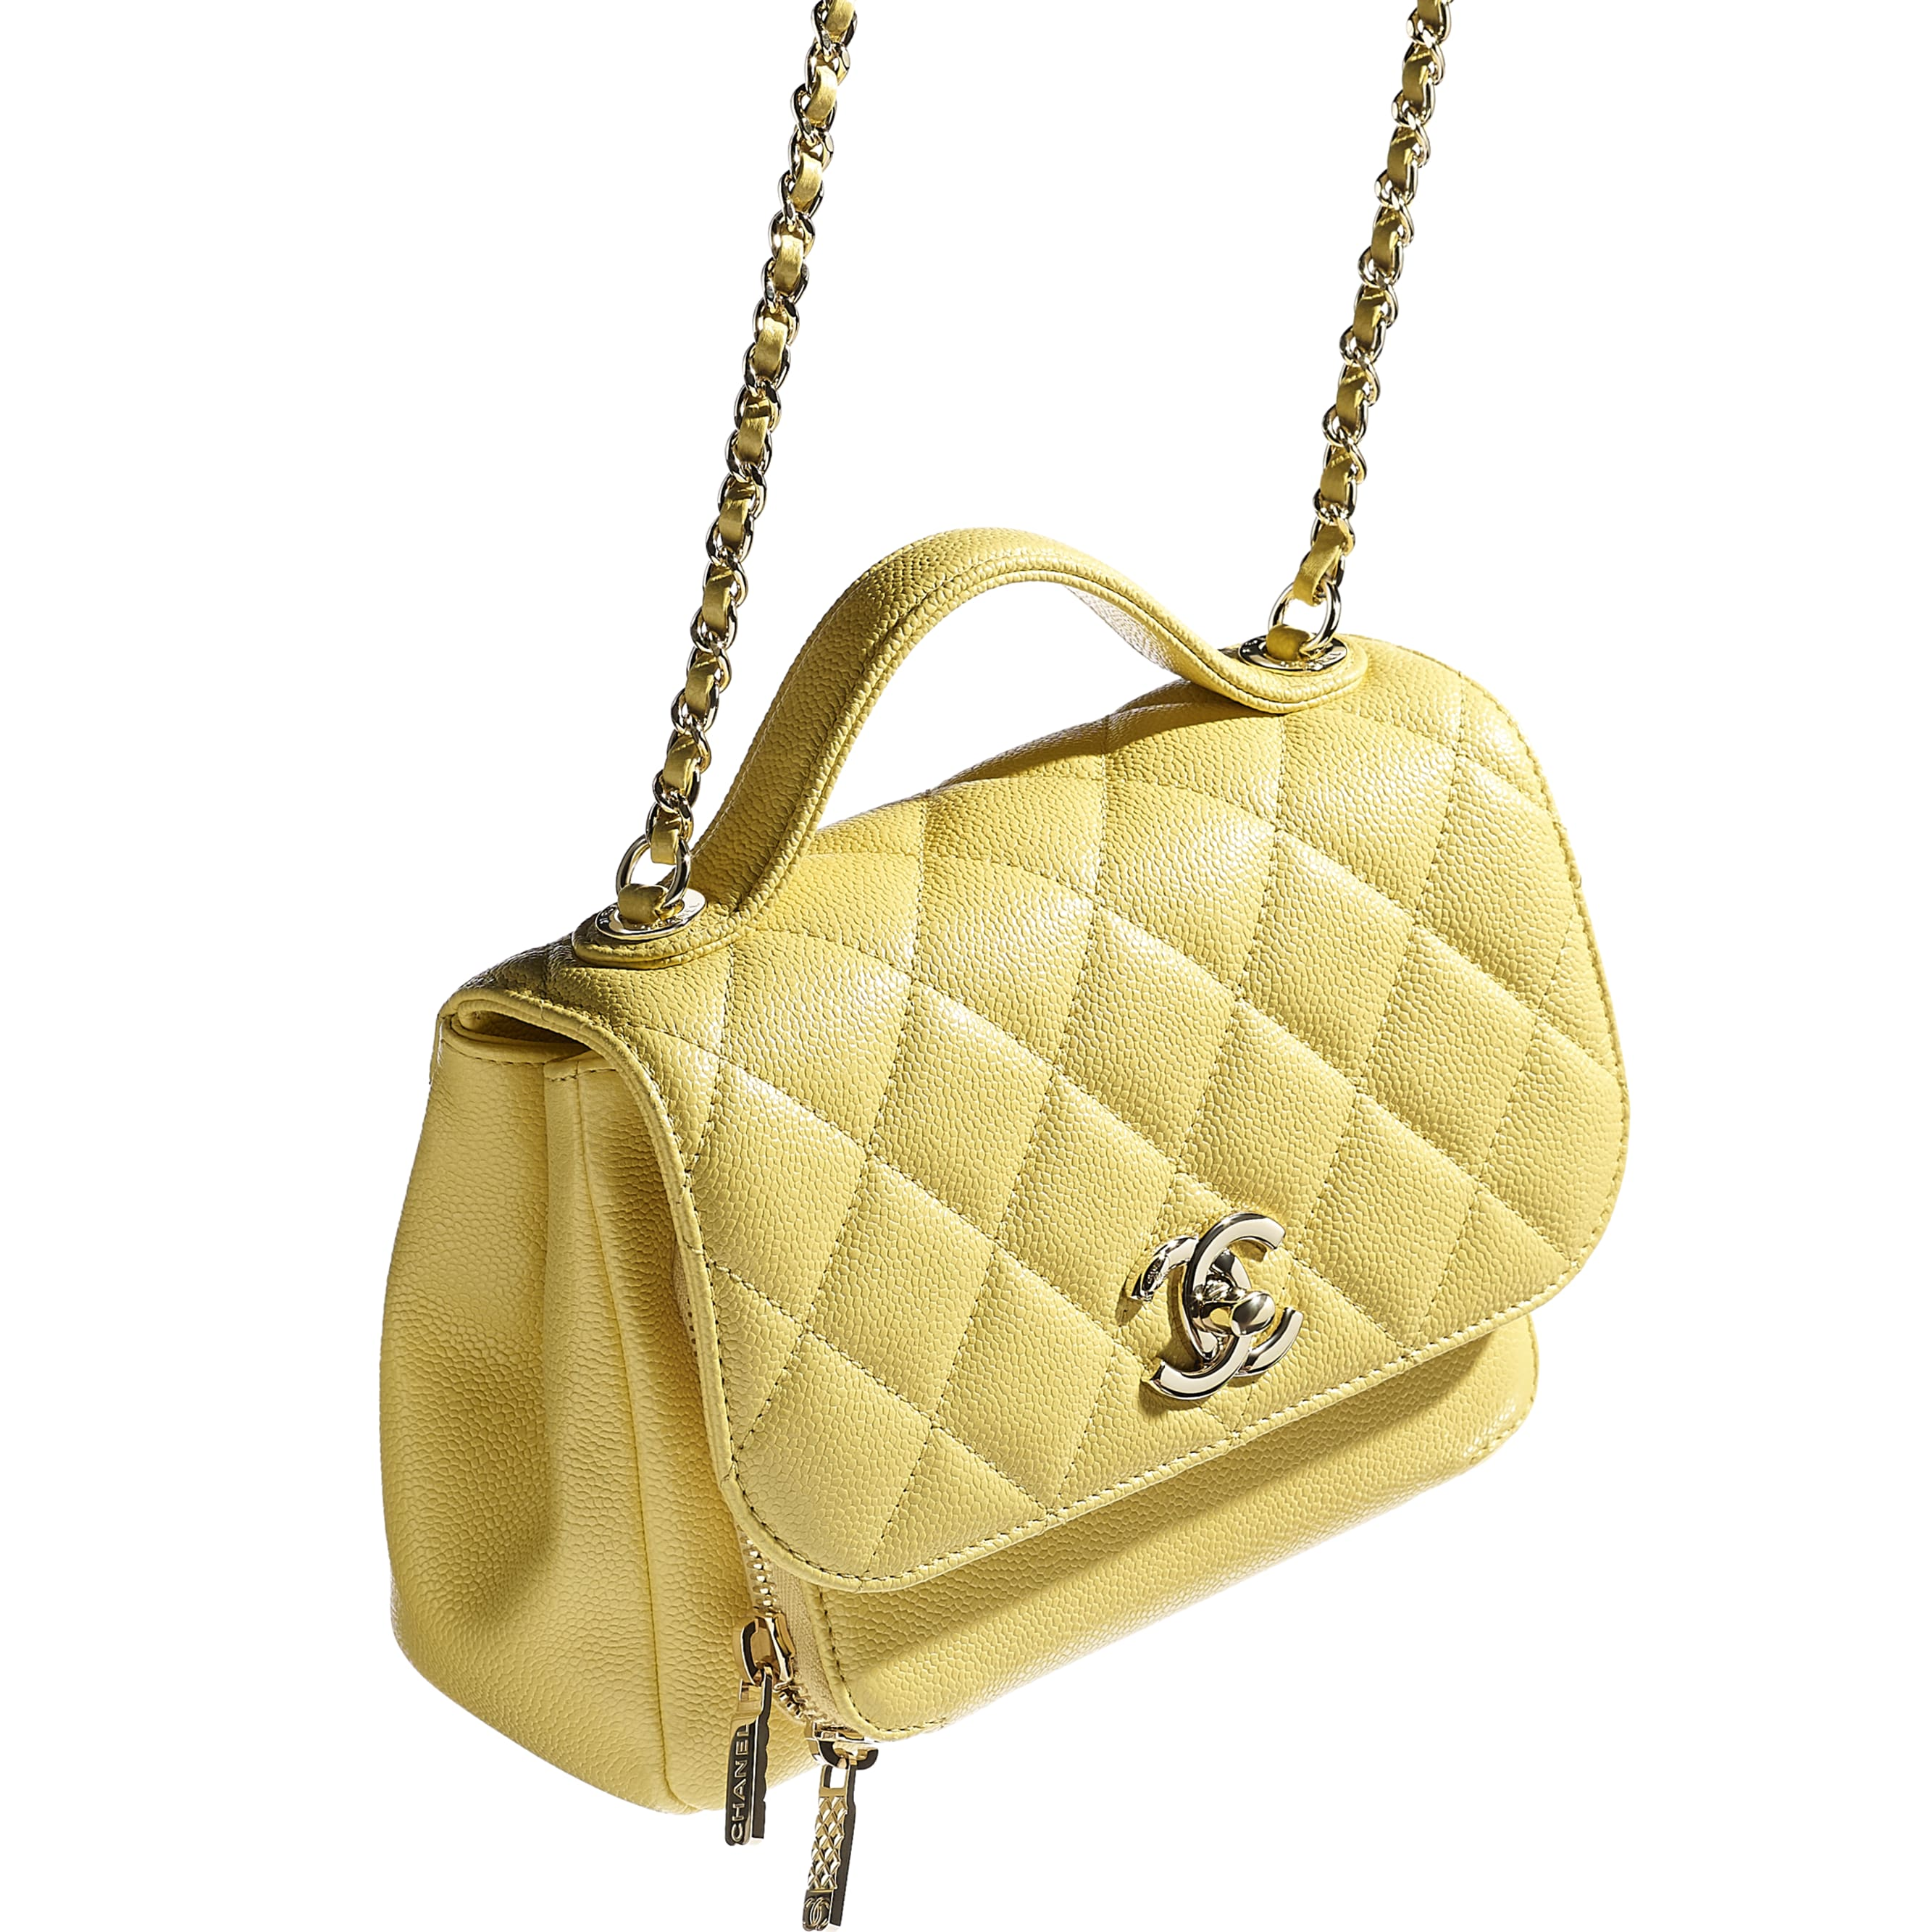 Mini Flap Bag with Handle - Yellow - Grained Calfskin & Gold-Tone Metal - CHANEL - Extra view - see standard sized version